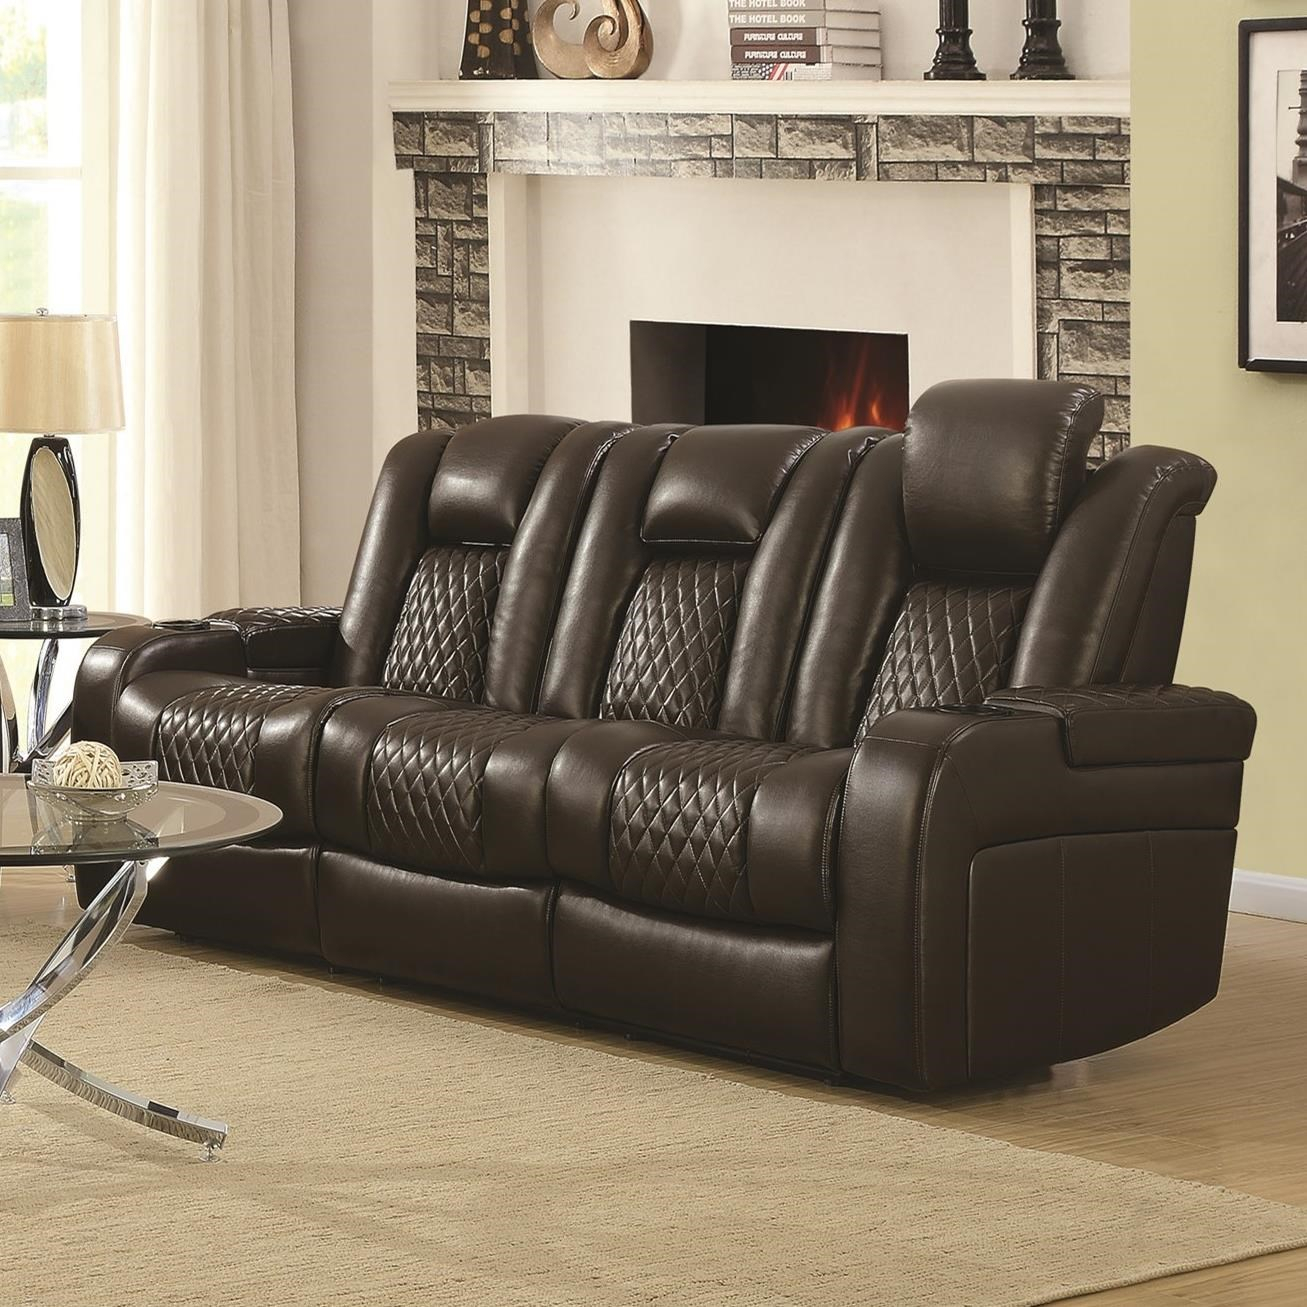 Delangelo Casual Power Reclining Sofa With Cup Holders Within Expedition Brown Power Reclining Sofas (View 8 of 15)